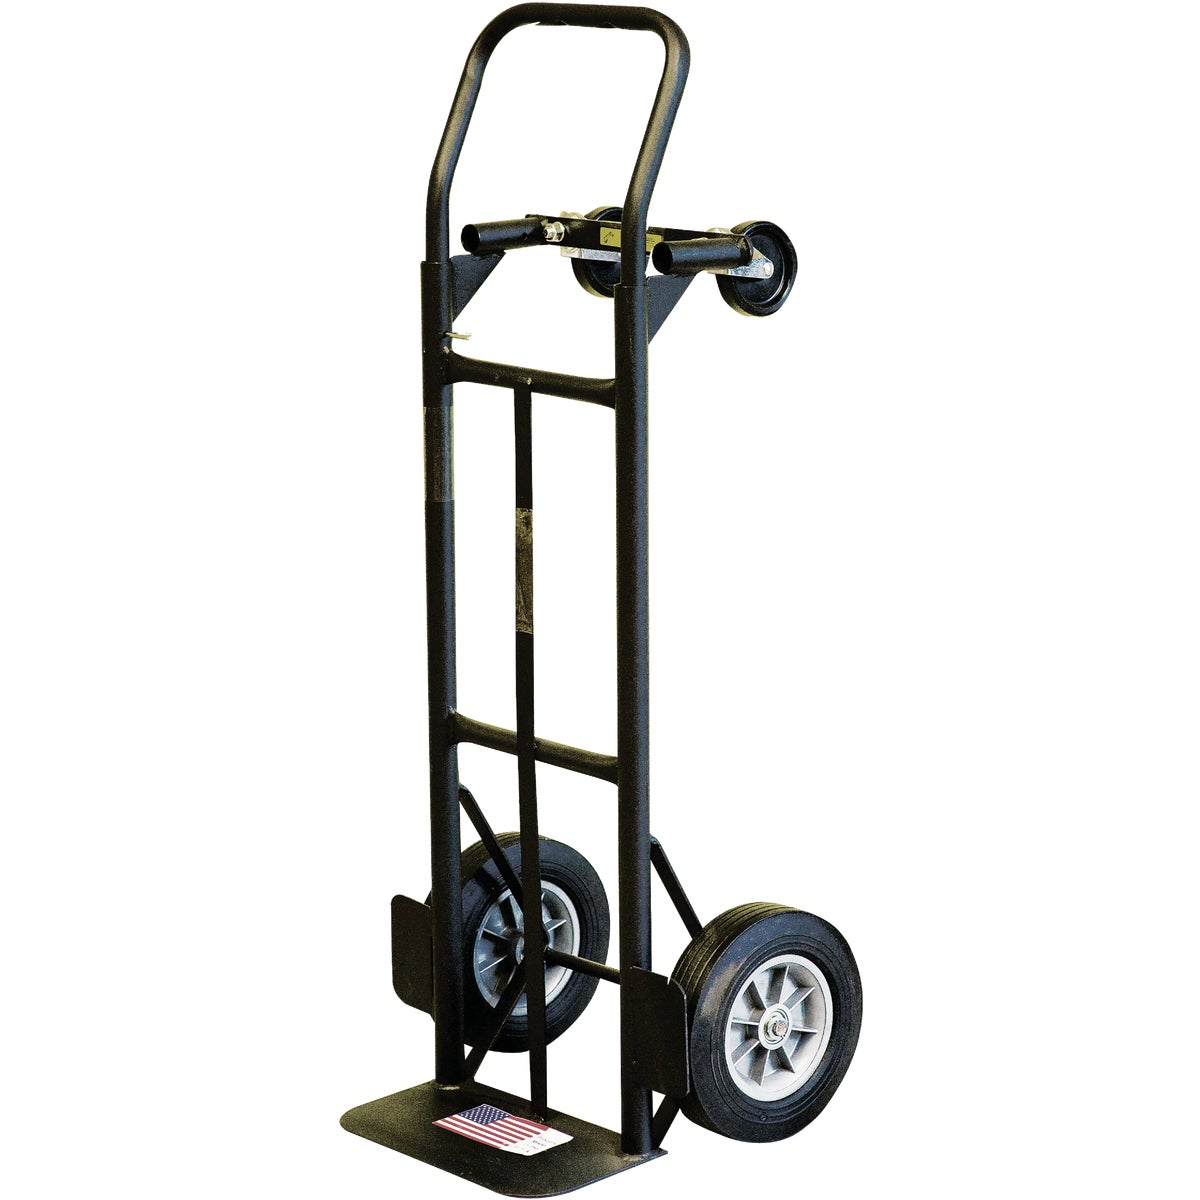 800LB HAND TRUCK CONVERT - 36080S by Gleason Indust Prod